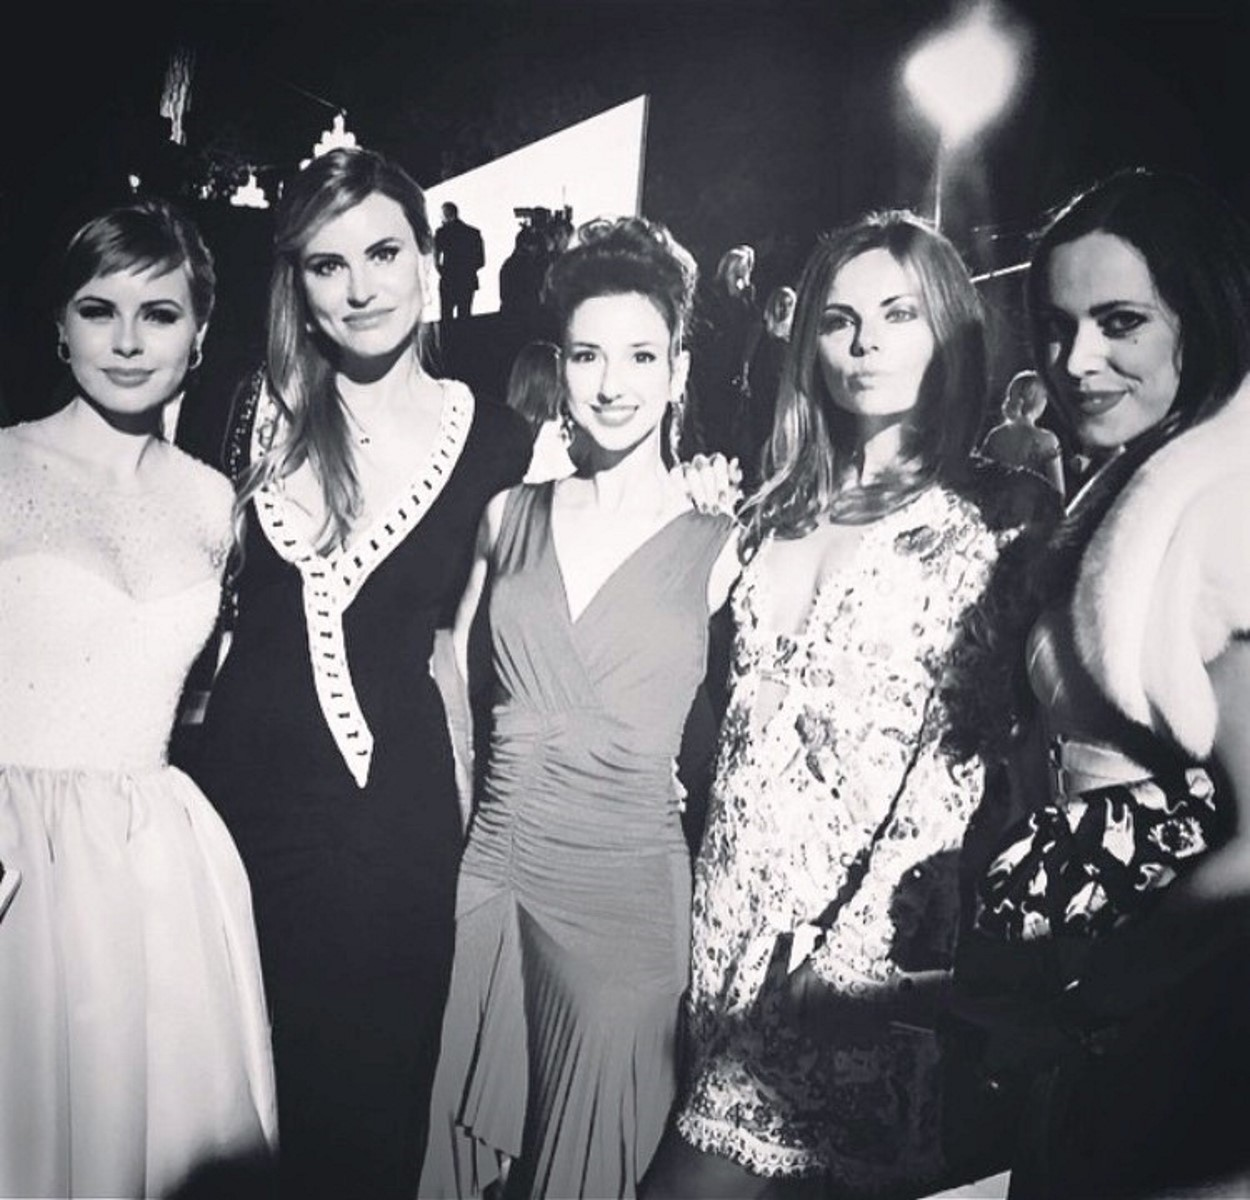 From left: Anna Klyukin, Magdalena Gabriel, Valentina Nessi, Erica Pelosini, Sandra Bauknecht -Grisogono Party at Eden Rock - one of the most prestigious events during Cannes Film Festival